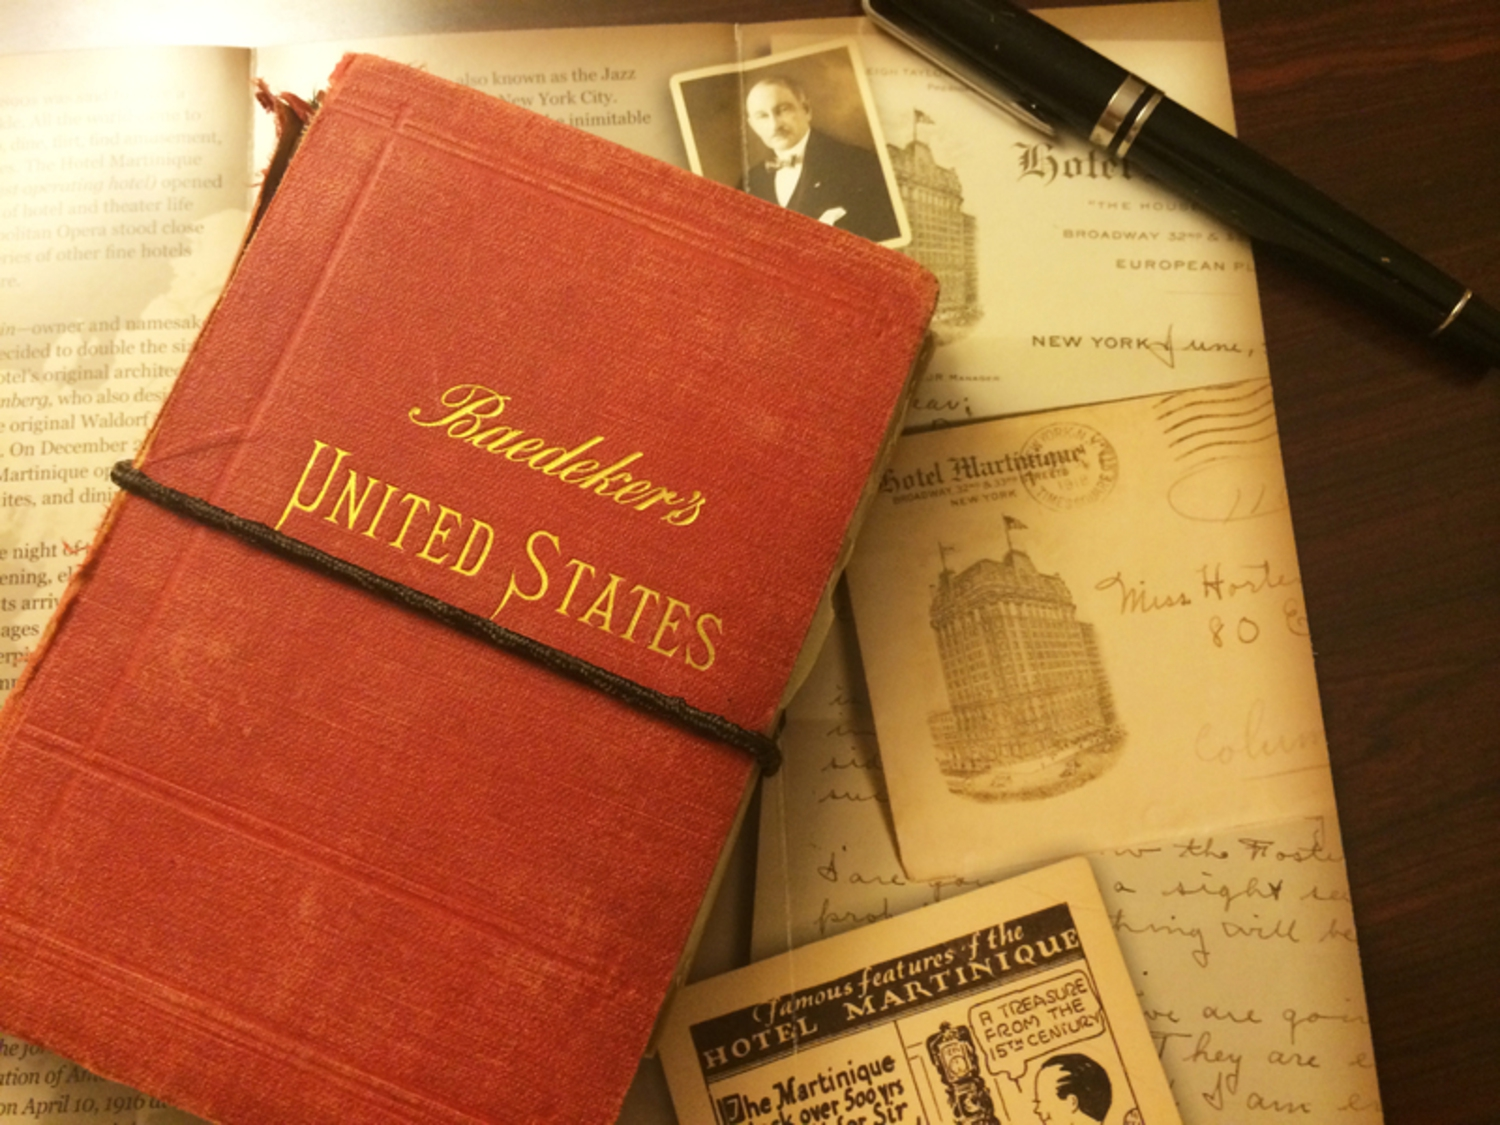 Luke Spencer's Baedeker's United States Guide, at the Hotel Martinique, which opened in 1897.